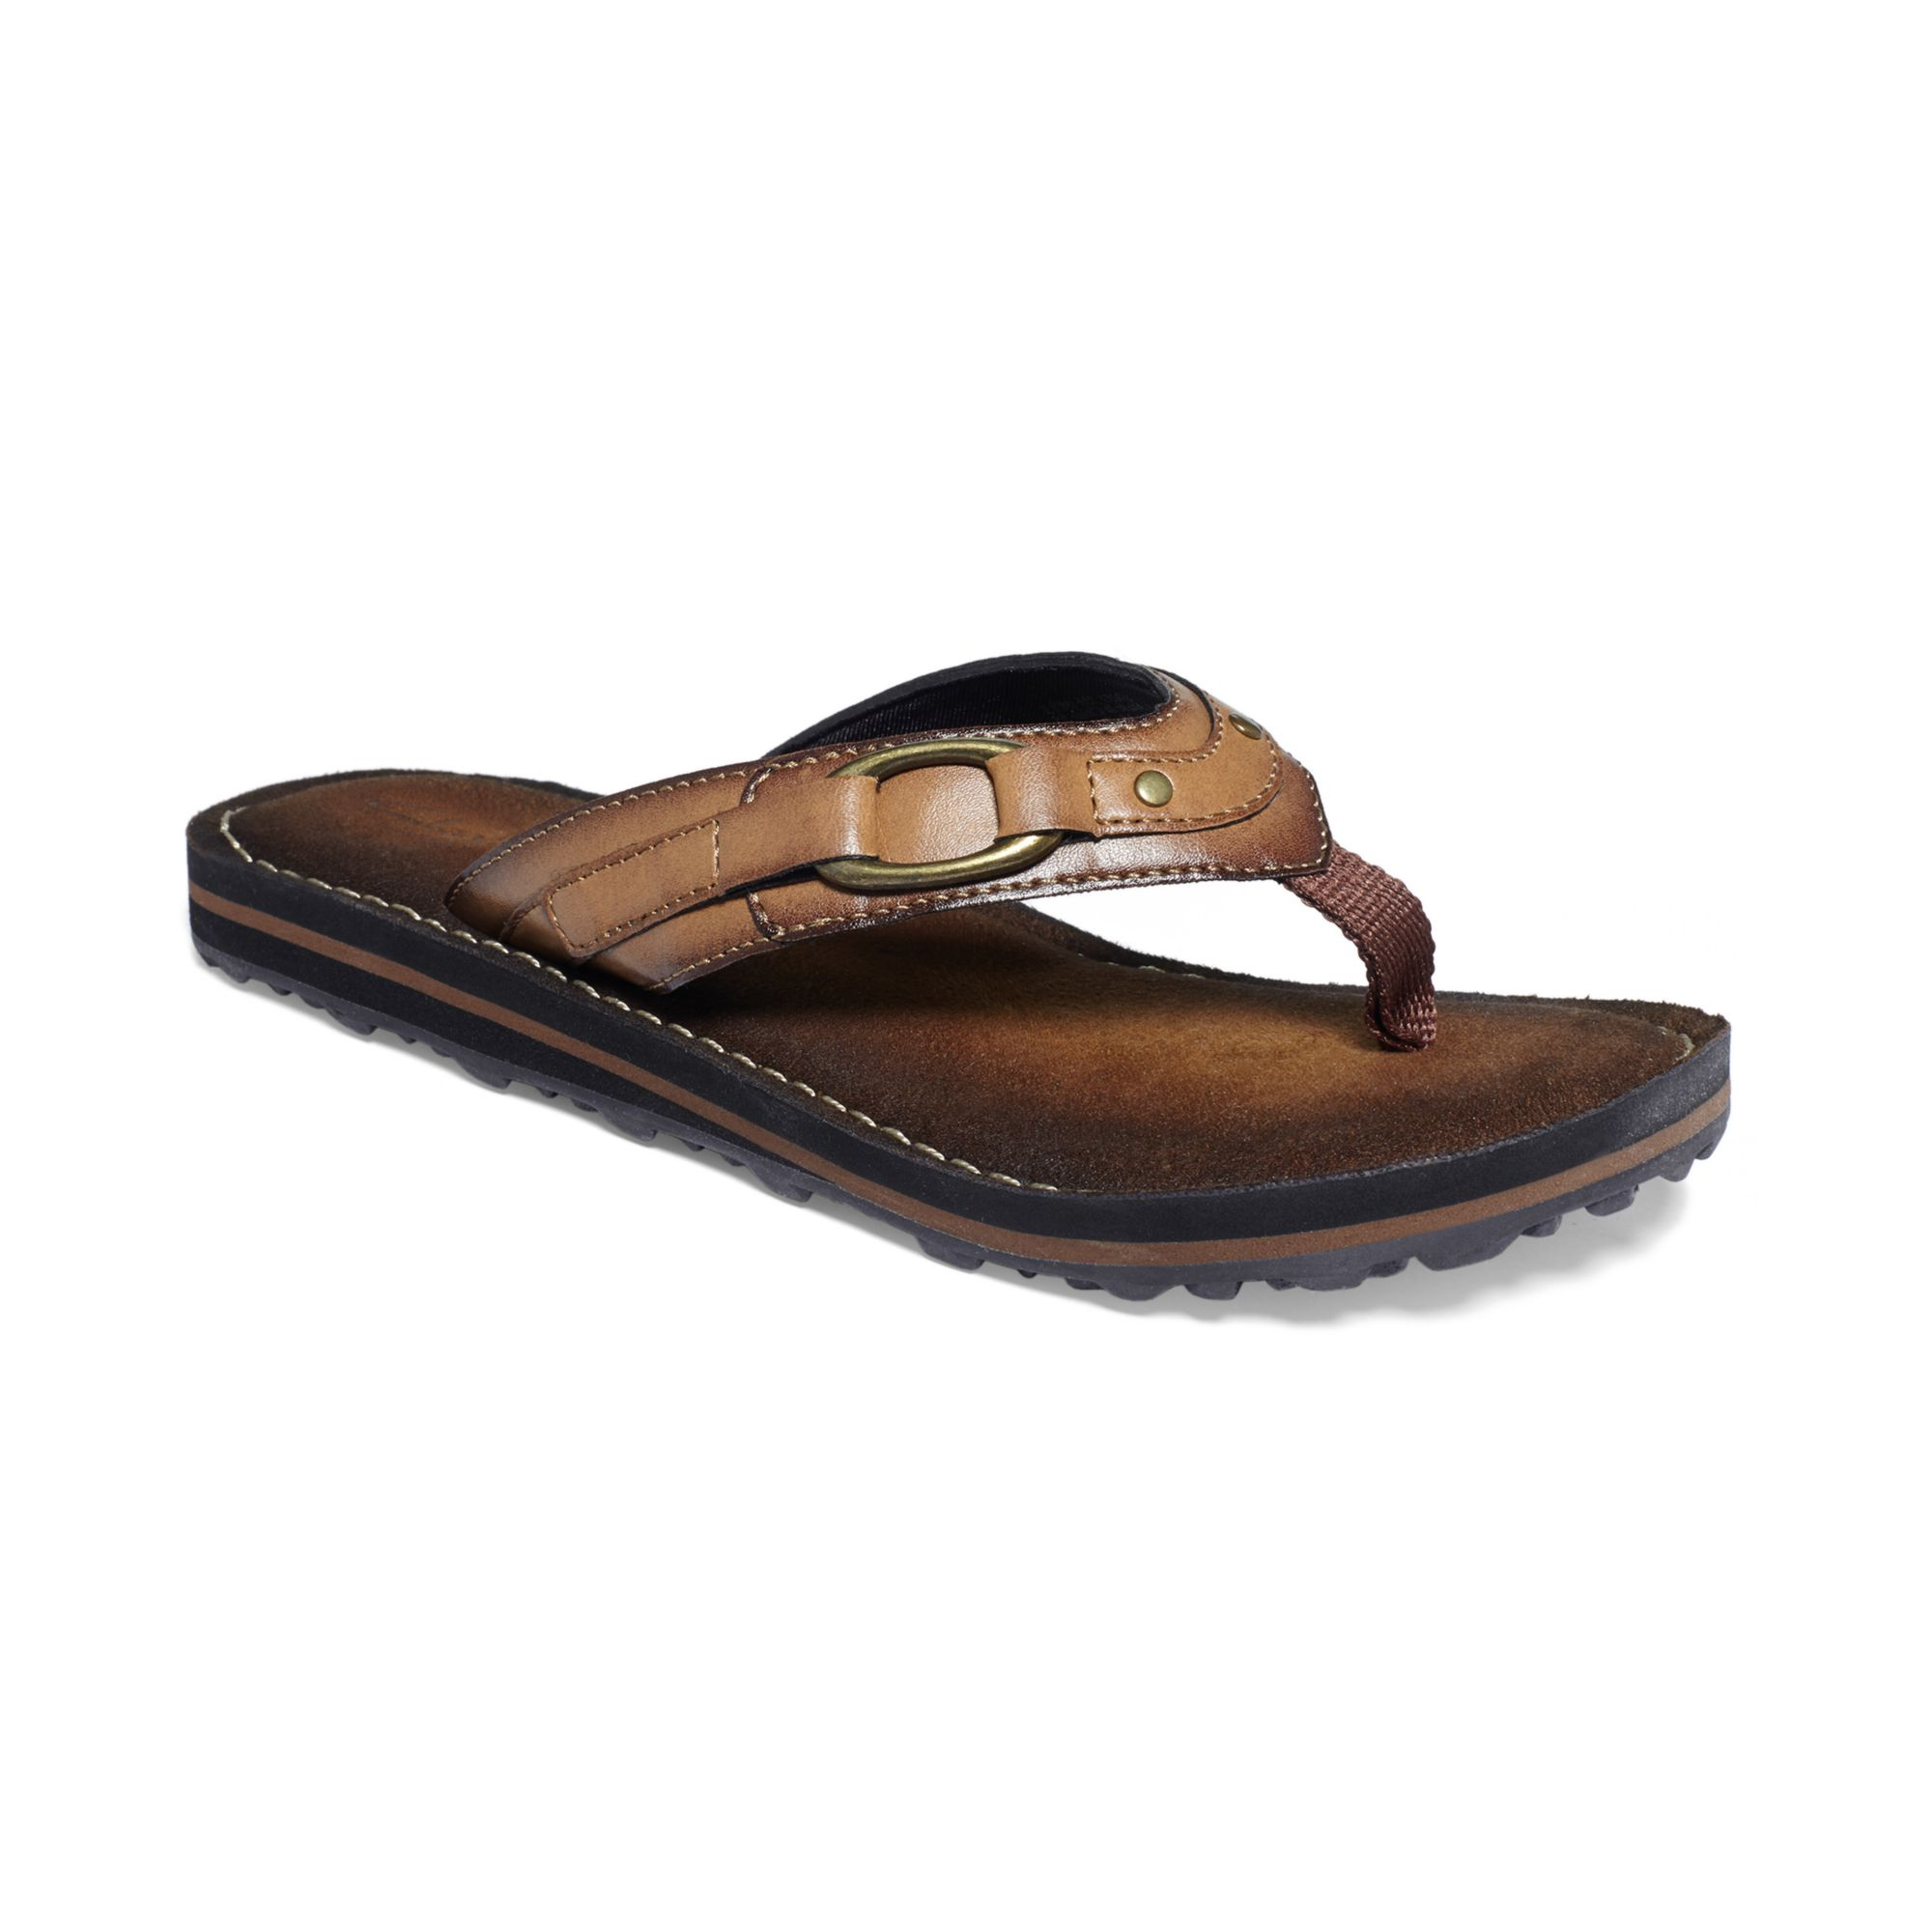 Clarks Womens Flip Abby Flip Flops In Brown Lyst